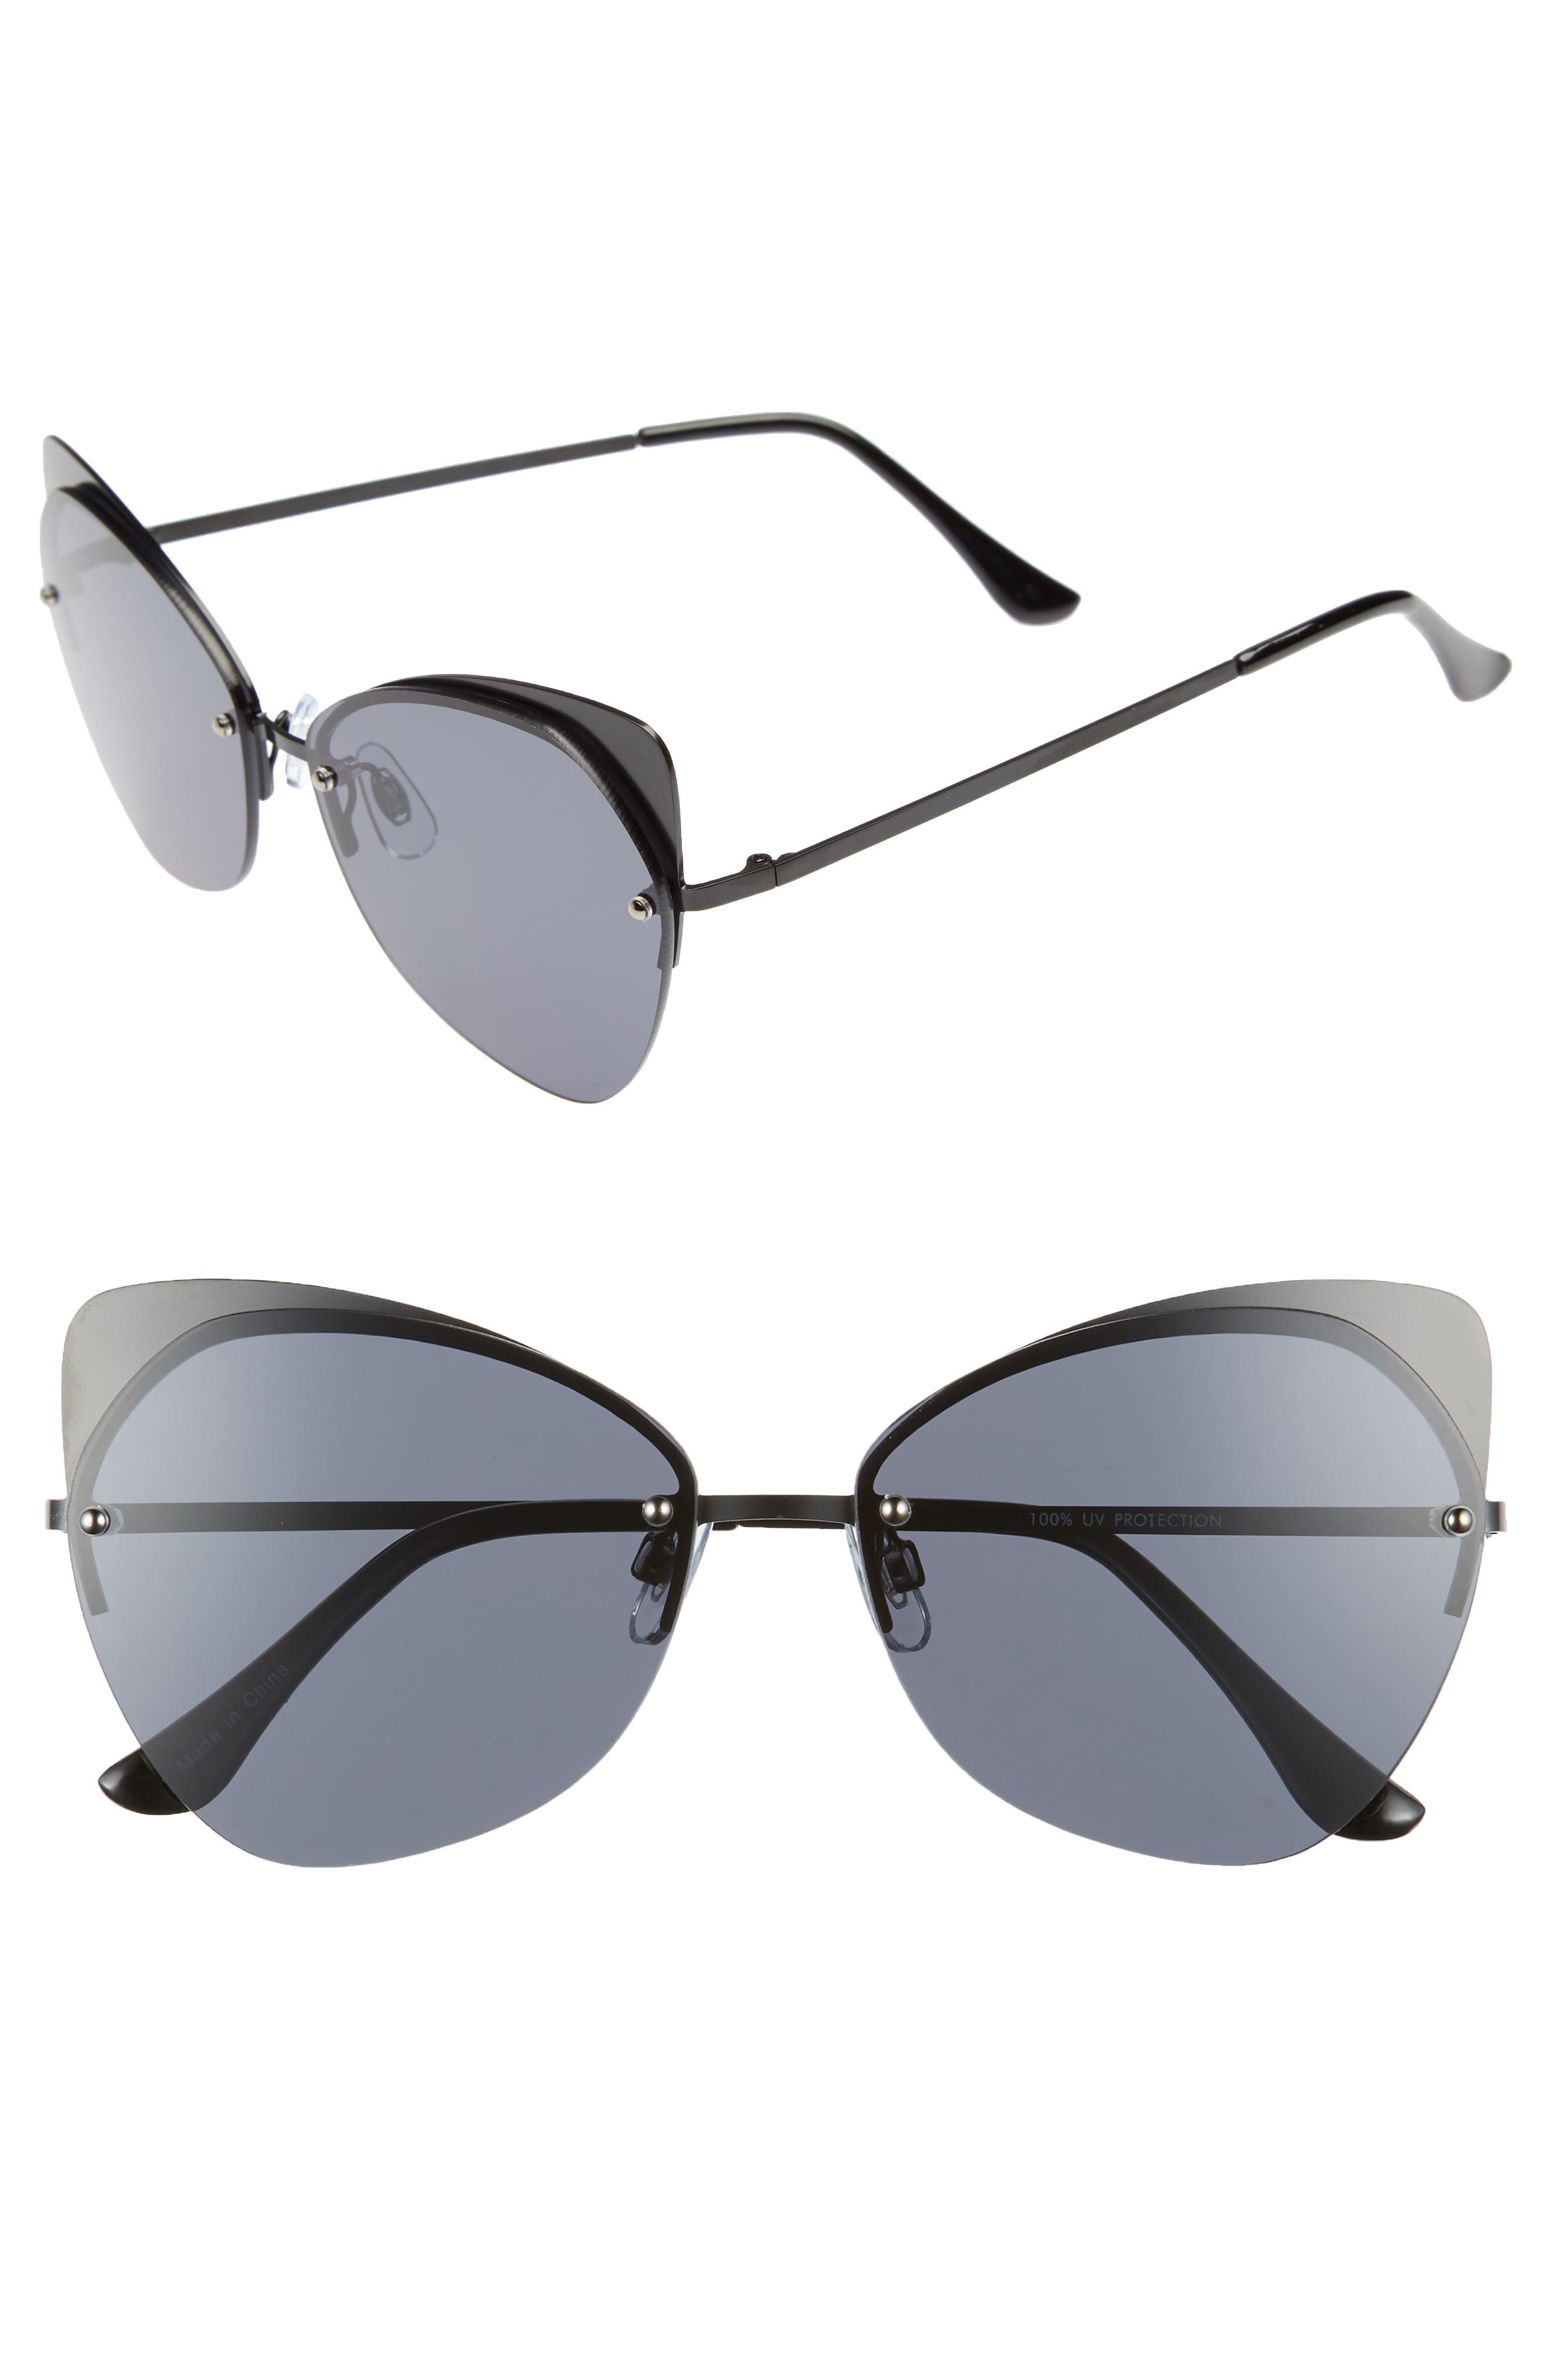 59mm Rimless Cat Eye Sunglasses,                         Main,                         color, 001